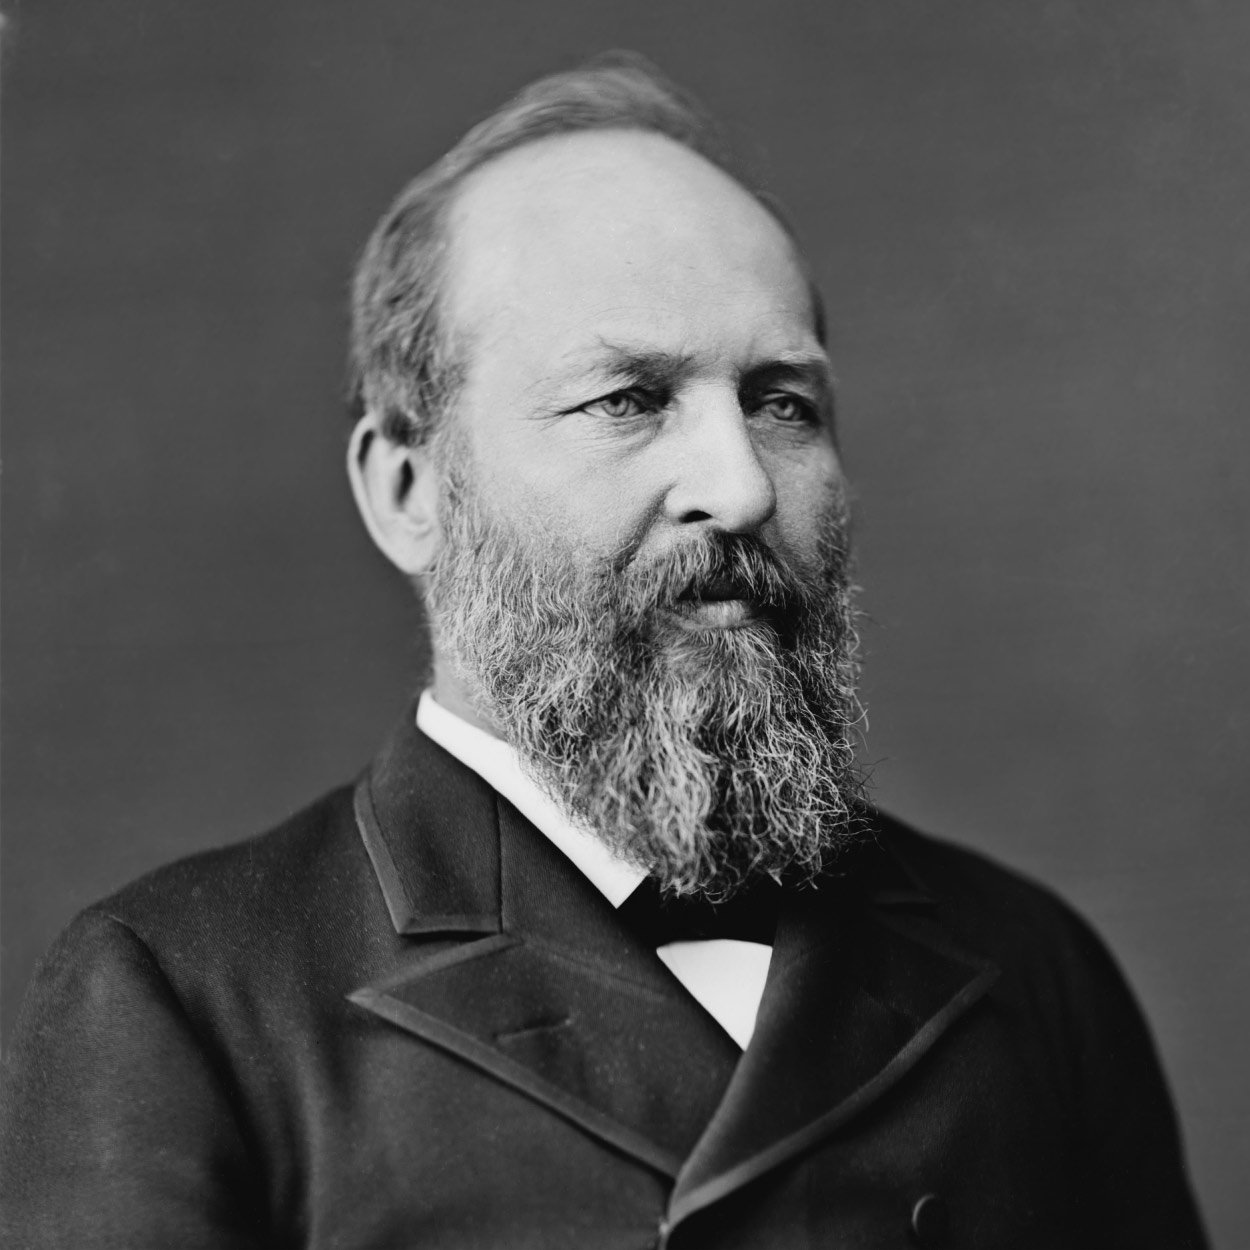 Portrait of James Garfield, the 20th President of the United States